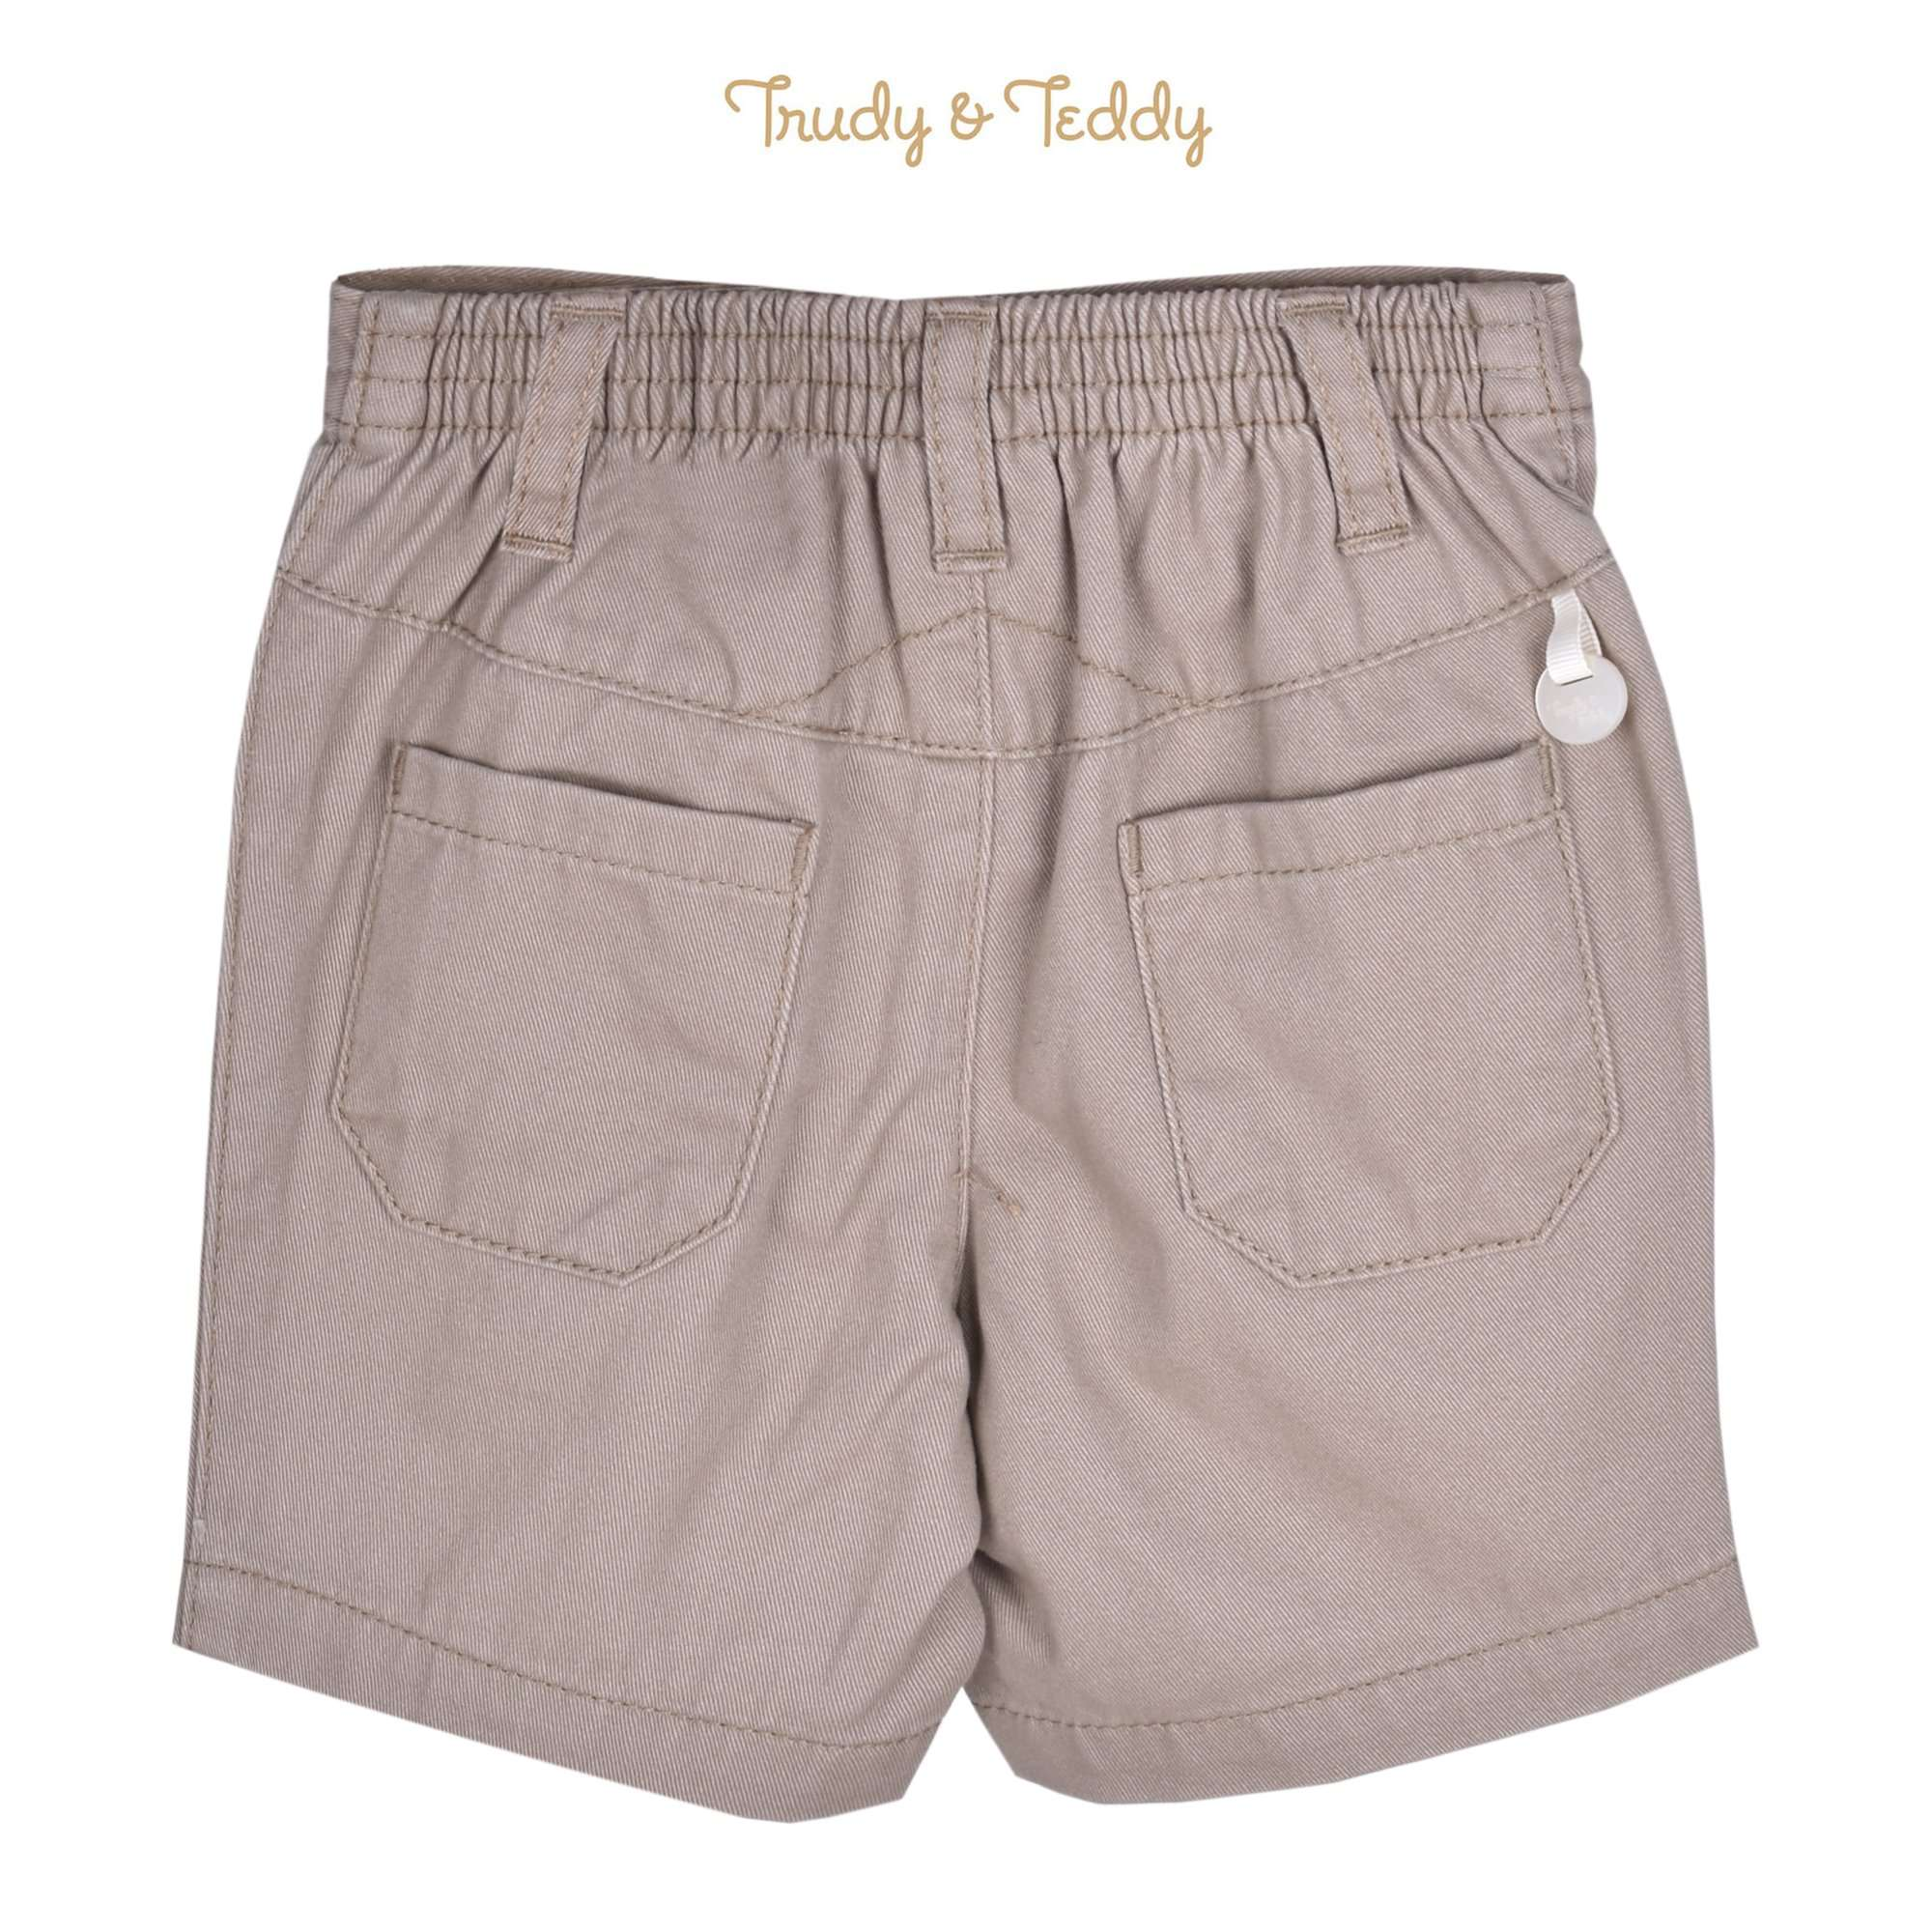 Trudy & Teddy Baby Boy Bermuda 810105-241 : Buy Trudy & Teddy online at CMG.MY